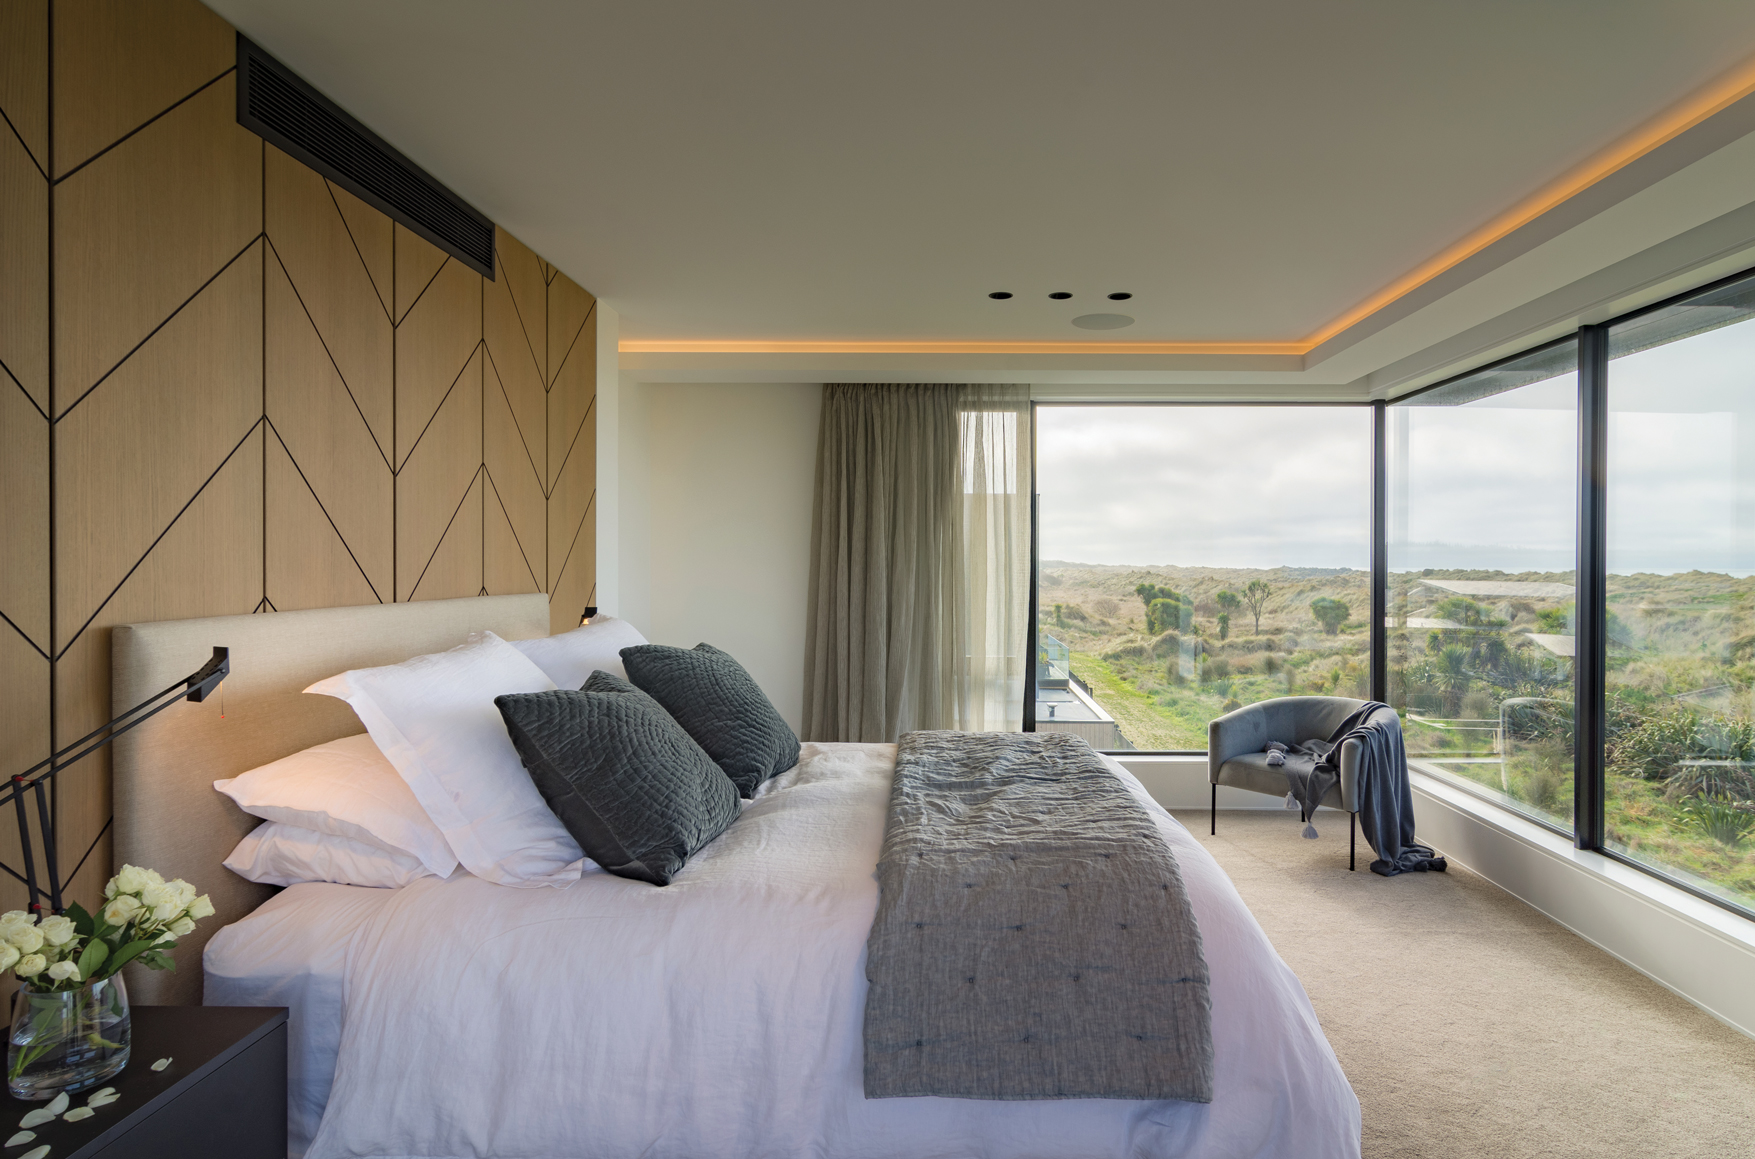 BEDROOM:  The master bedroom has custom recessed joinery headboard and floating wall-hung side tables in Baroque Wilderness and prime laminate in black velvet super matte.